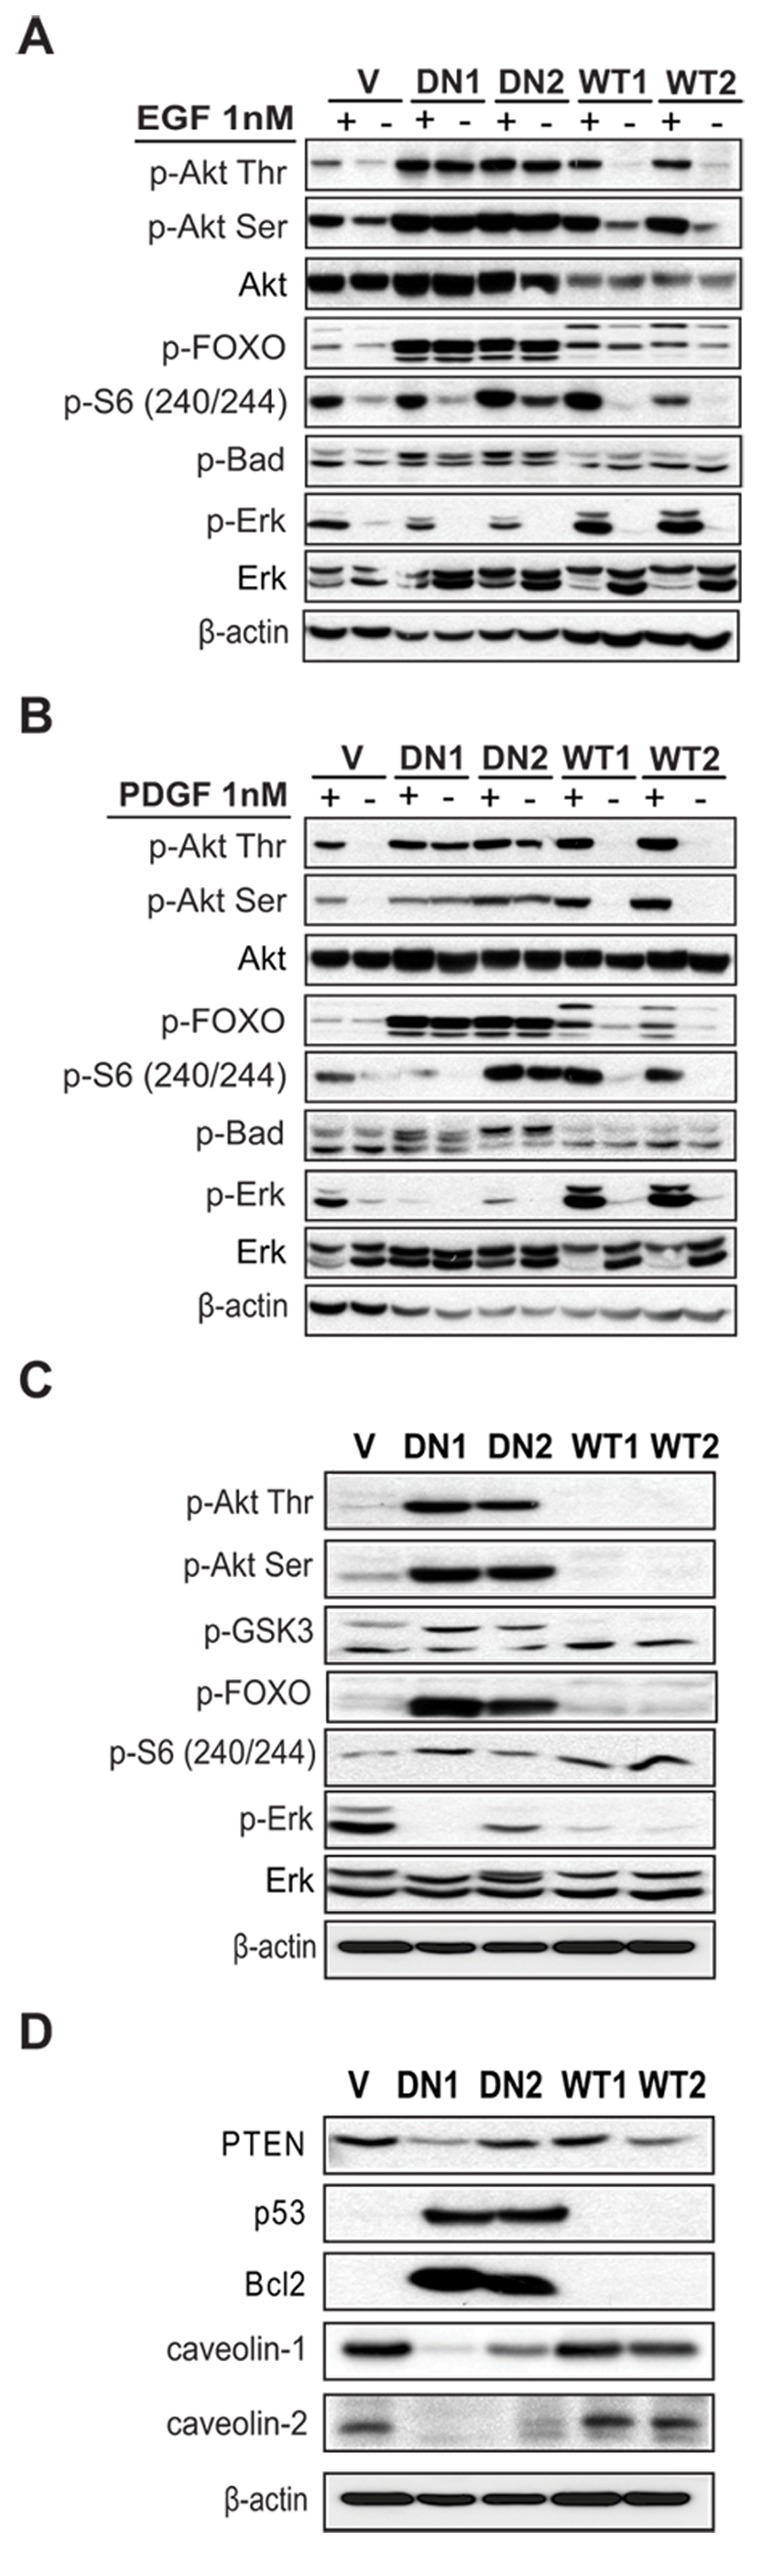 PI3KC2β protects NIH3T3 cells against anoikis. (A) NIH3T3-V, -C2β-DN and -C2β-WT cells were plated in presence of serum on ultra-low attachment matrix. After 16 h Caspase 3/7 activity was measured as readout for detachment-induced apoptosis (anoikis). Data are mean ± SD of two independent experiments. WT1, −2 and DN1, −2 indicate individual clones. (B) NIH3T3 cells transiently transfected with the wild-type Myc-PI3KC2β, constitutively active form of GFP-fused RhoA protein (CA-RhoA-GFP) or myristylated (Akt-myr) were plated 48 h post-transfection on ultra-low attachment matrix. 16 h later Caspase 3/7 activation was analysed as readout for anoikis. Data are mean ± SD of three independent experiments. Expression level of the transfected proteins and associated signalling was analysed 48 h post-transfection by immunoblotting with indicated antibodies. (C) NIH3T3-C2β-WT cells were transiently transfected with dominant-negative RhoA-GFP (DN-Rho-GFP) or control vector (V). 48 h post-transfection cells were plated on ultra-low attachment matrix and caspase 3/7 activation was measured. Data are mean ± SD of three independent experiments. 48 h post-transfection expression level of the transfected proteins was analysed by western blot with indicated antibodies.